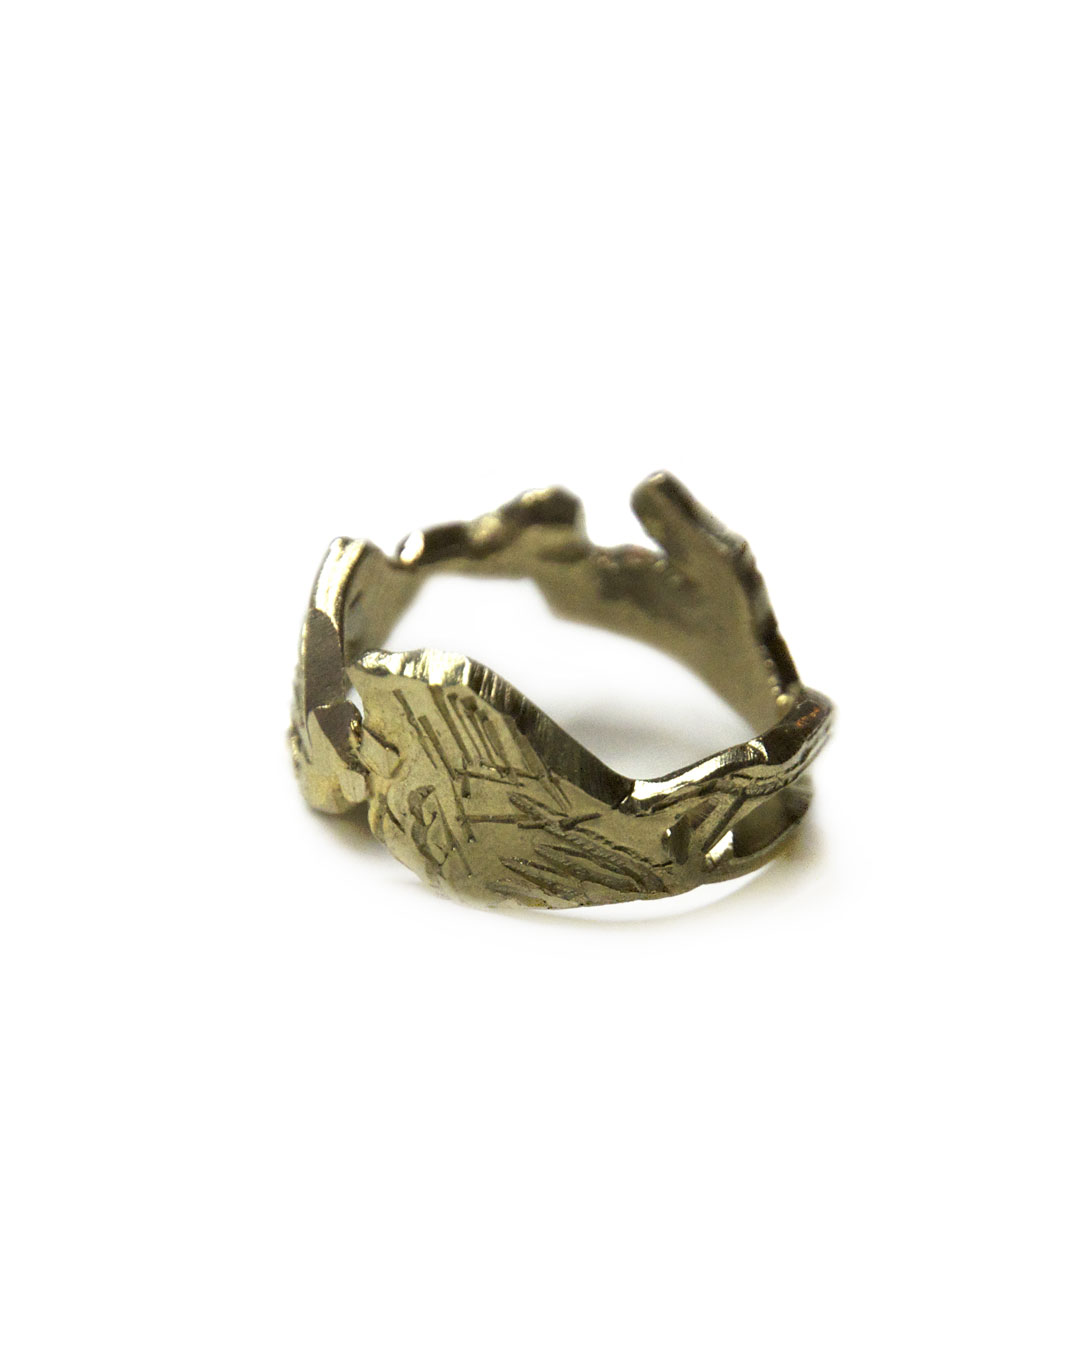 Rudolf Kocéa, Flügel (Wings), 2012, ring; 14ct gold (10.4 g), ø 23 x 11 mm, €1490